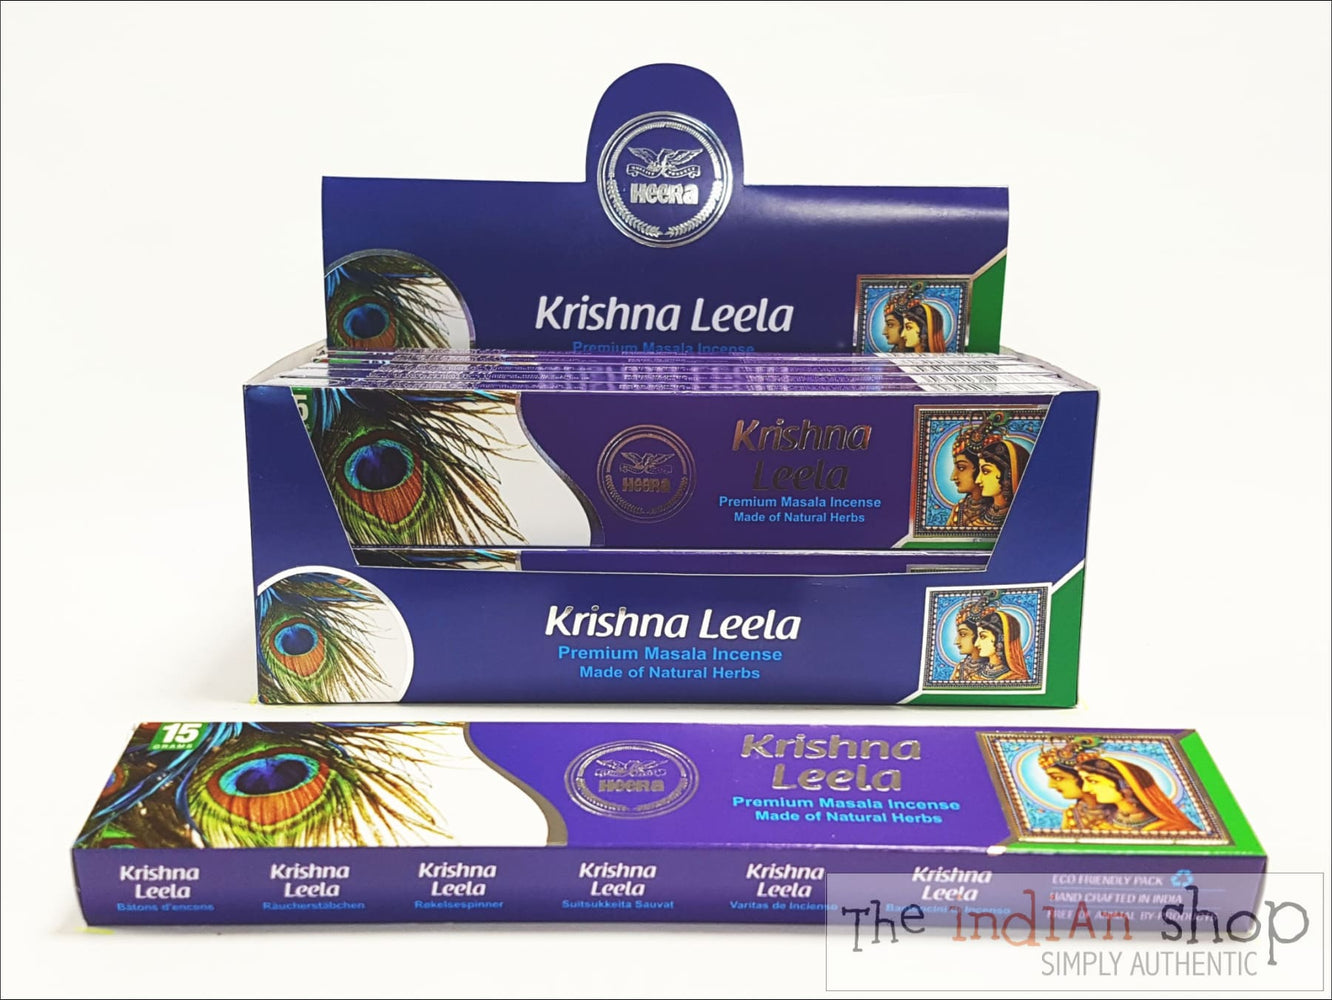 Heera Krishna Leela Incense Sticks - Pooja Items